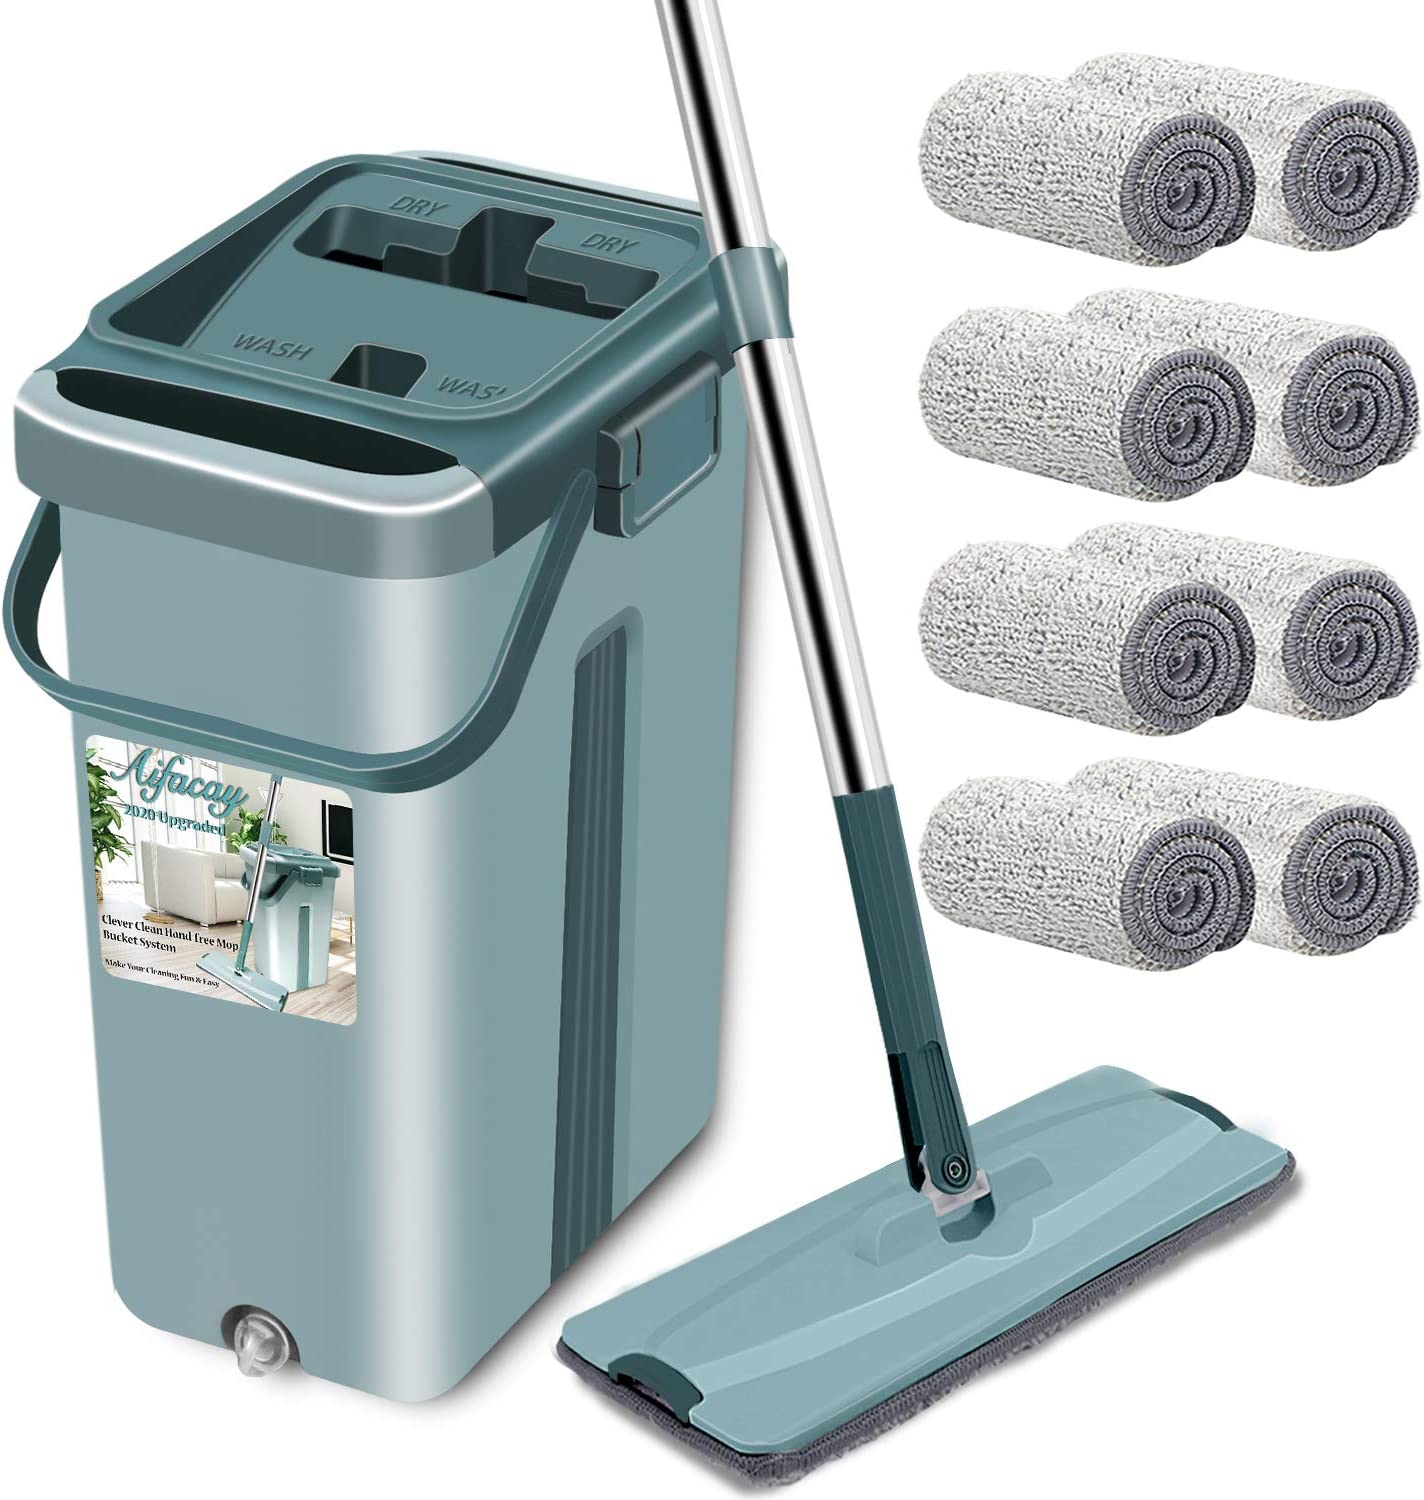 Aifacay Floor Mop with Bucket Upgrade Hands-Free Squeeze Microfiber Mop System 360° Flexible Head Mop with 8 Reusable Microfiber Pads, 59.8'' Extended Stainless Steel Handle for Floor Cleaning